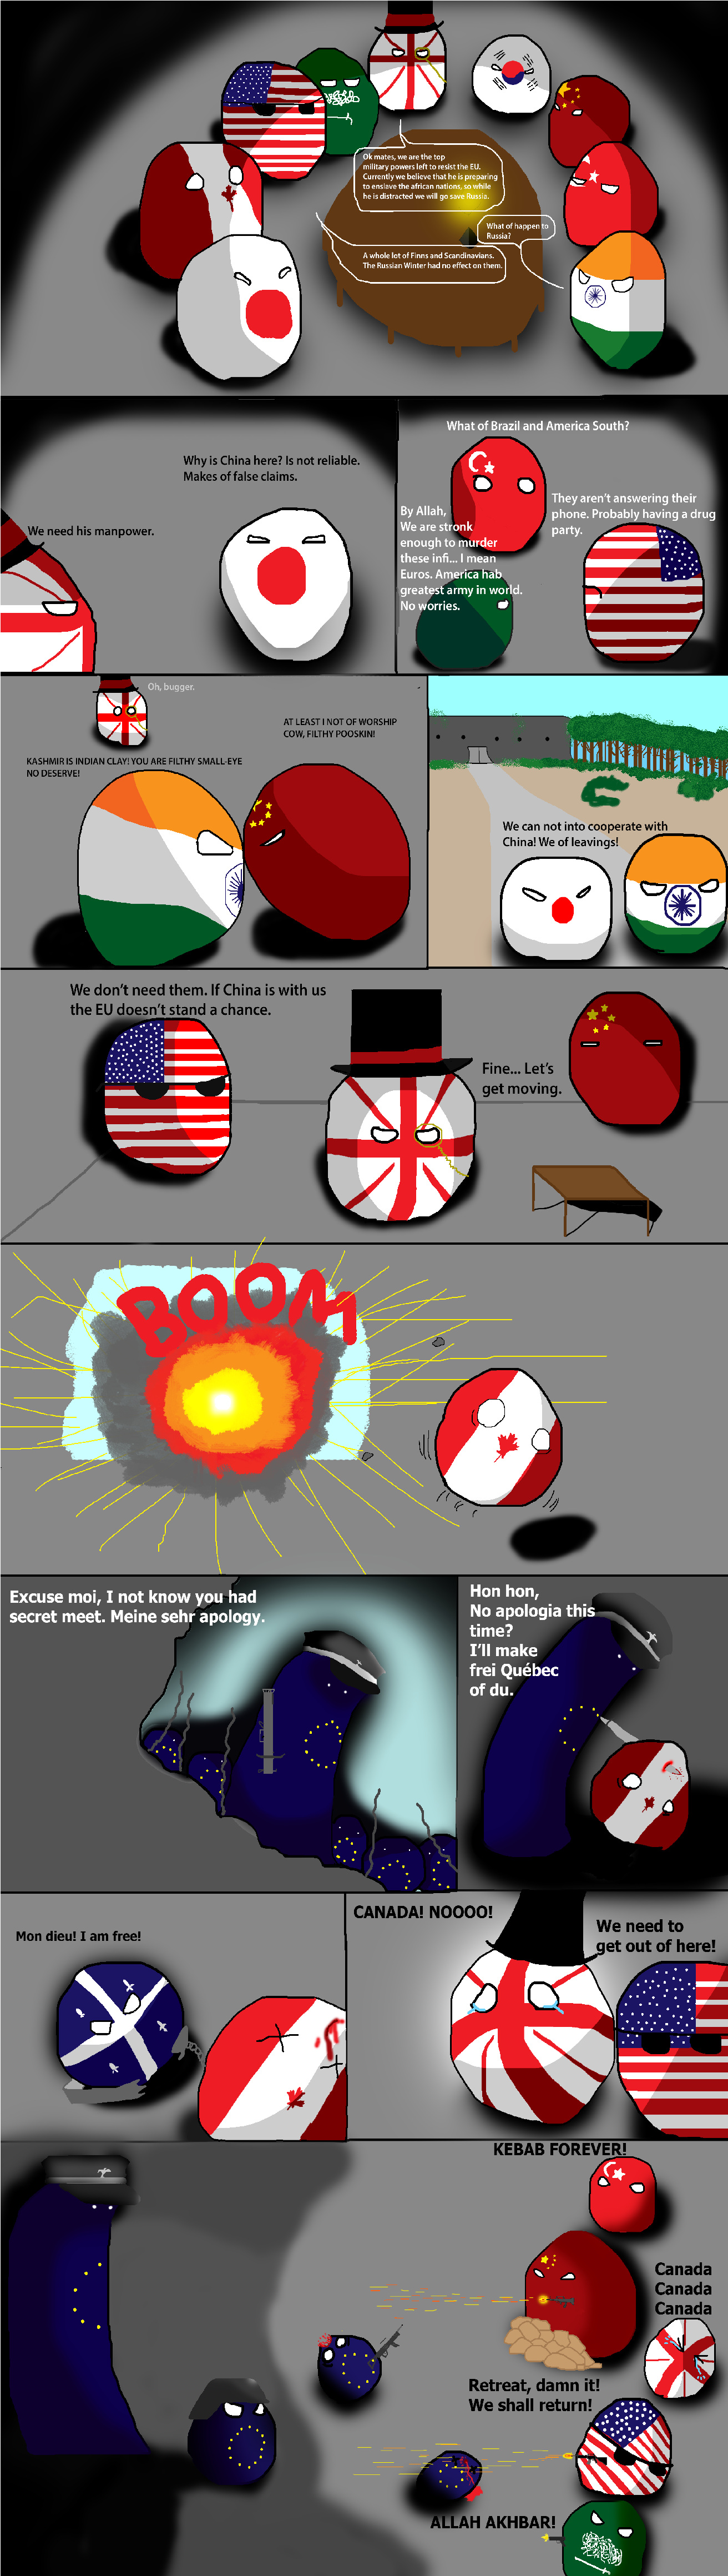 Euroreich Part 3. Sorry for being so late with the comic... Part 1: Part 2: You'll have to zoom in for the text at the start and I am sorry for that. I'll make it better next time.